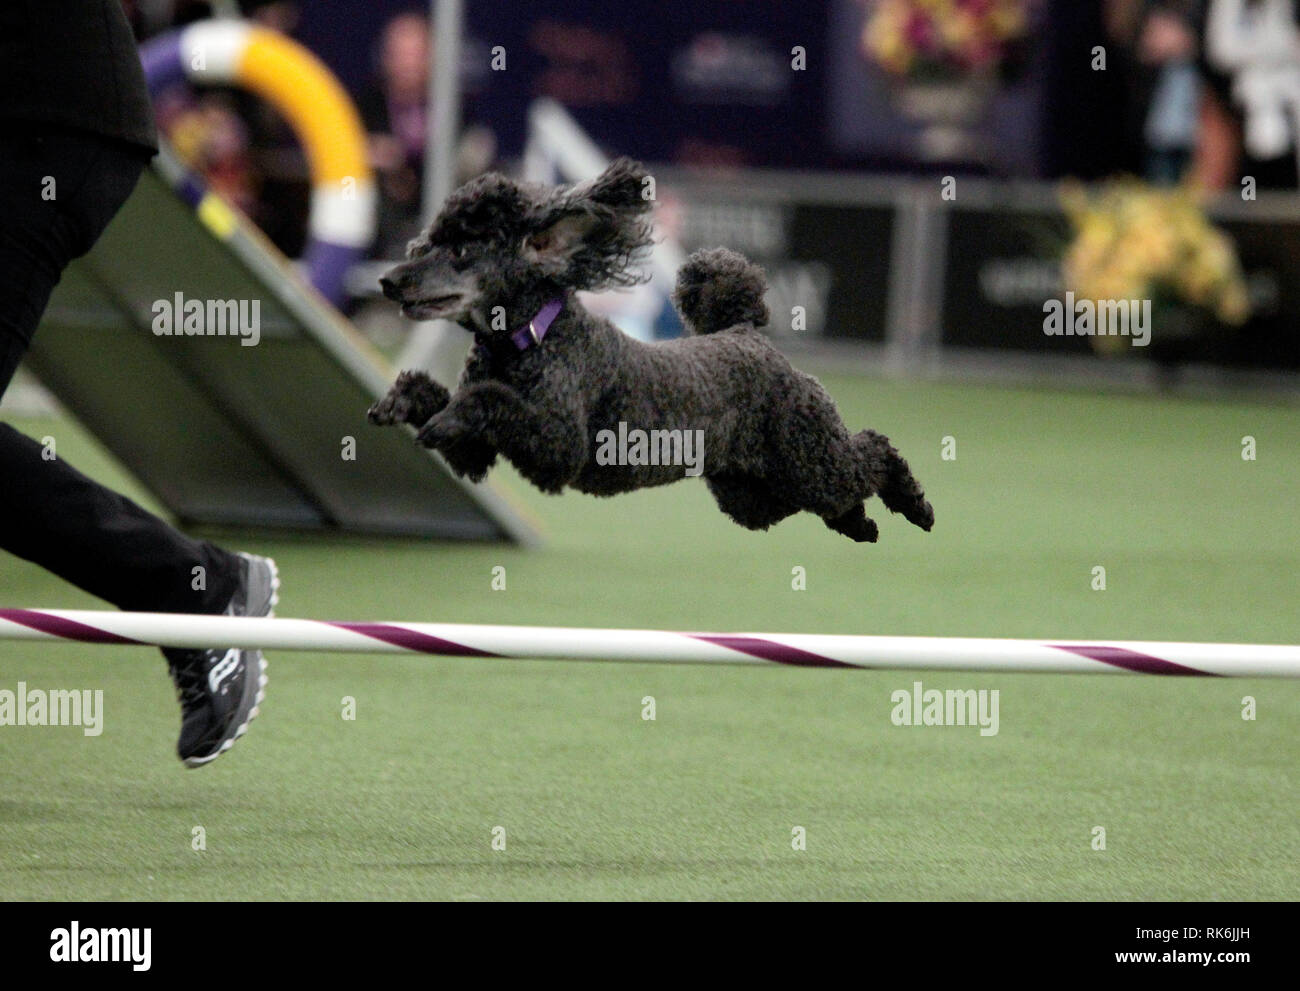 New York, USA. 9th Feb 2019. Chloe, A Poddle, competing in the preliminaries of the Westminster Kennel Club's Master's Agility Championship. Credit: Adam Stoltman/Alamy Live News Stock Photo